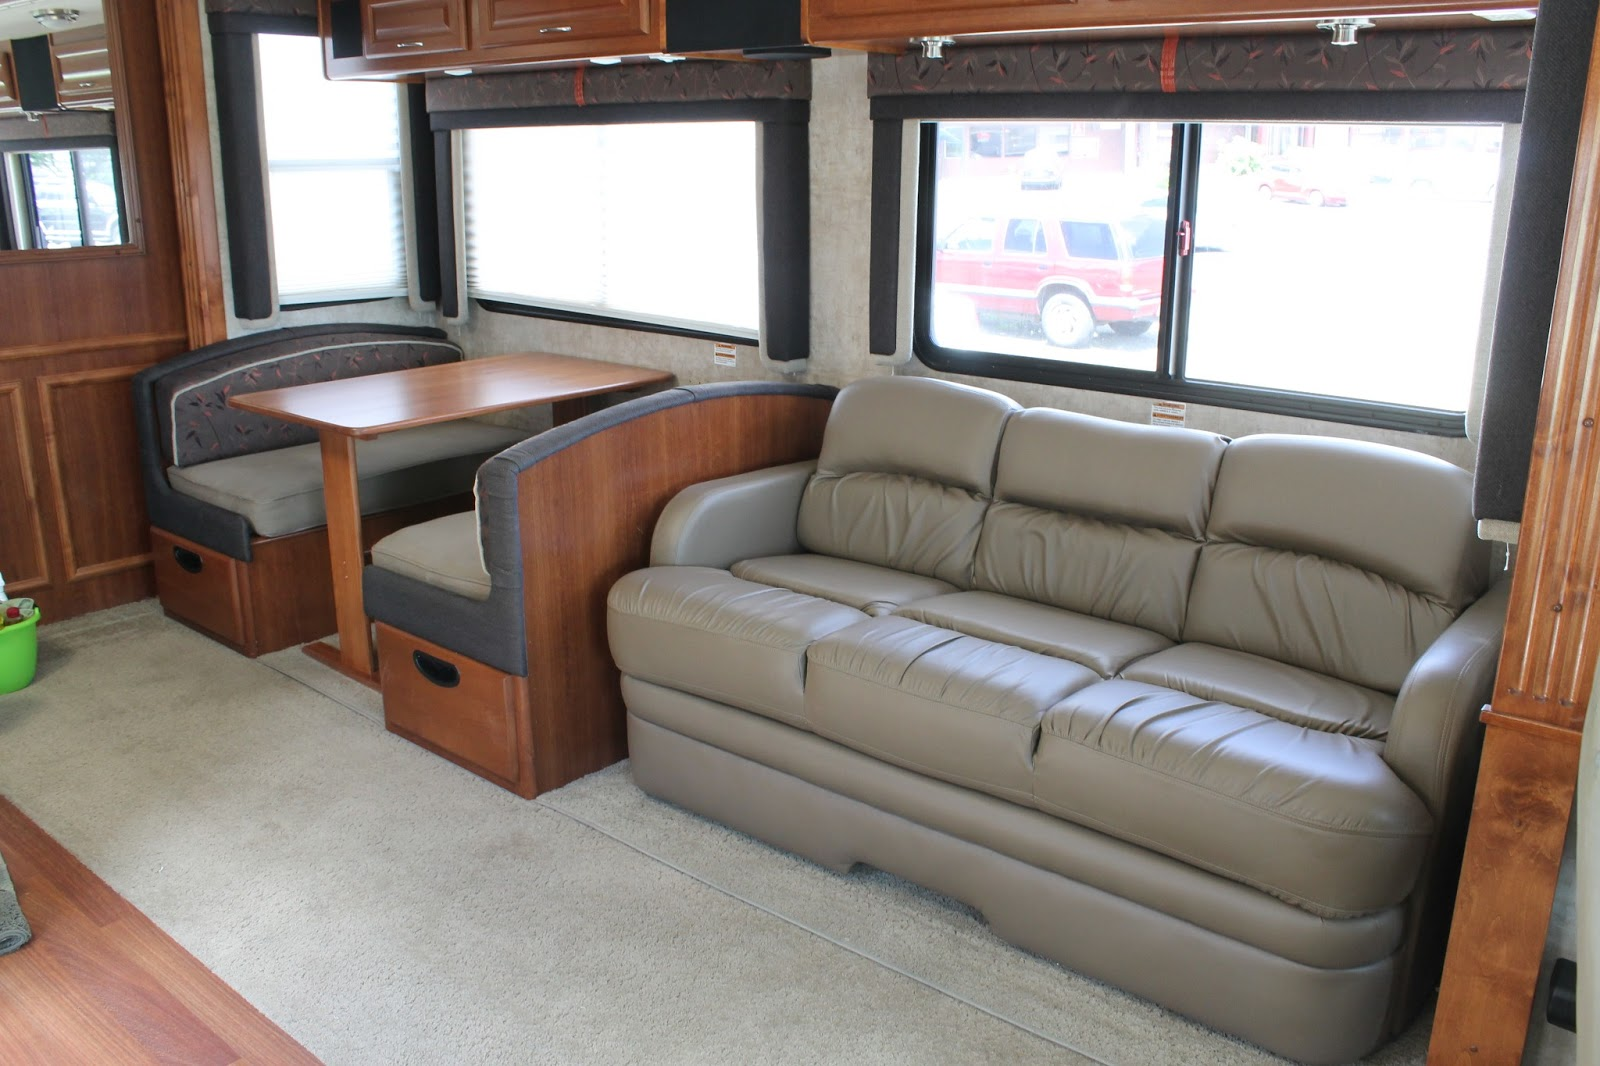 Jackknife Sofa Bed Mart El Paso Tx Countryside Interiors - Transforming Rvs And Trailers ...